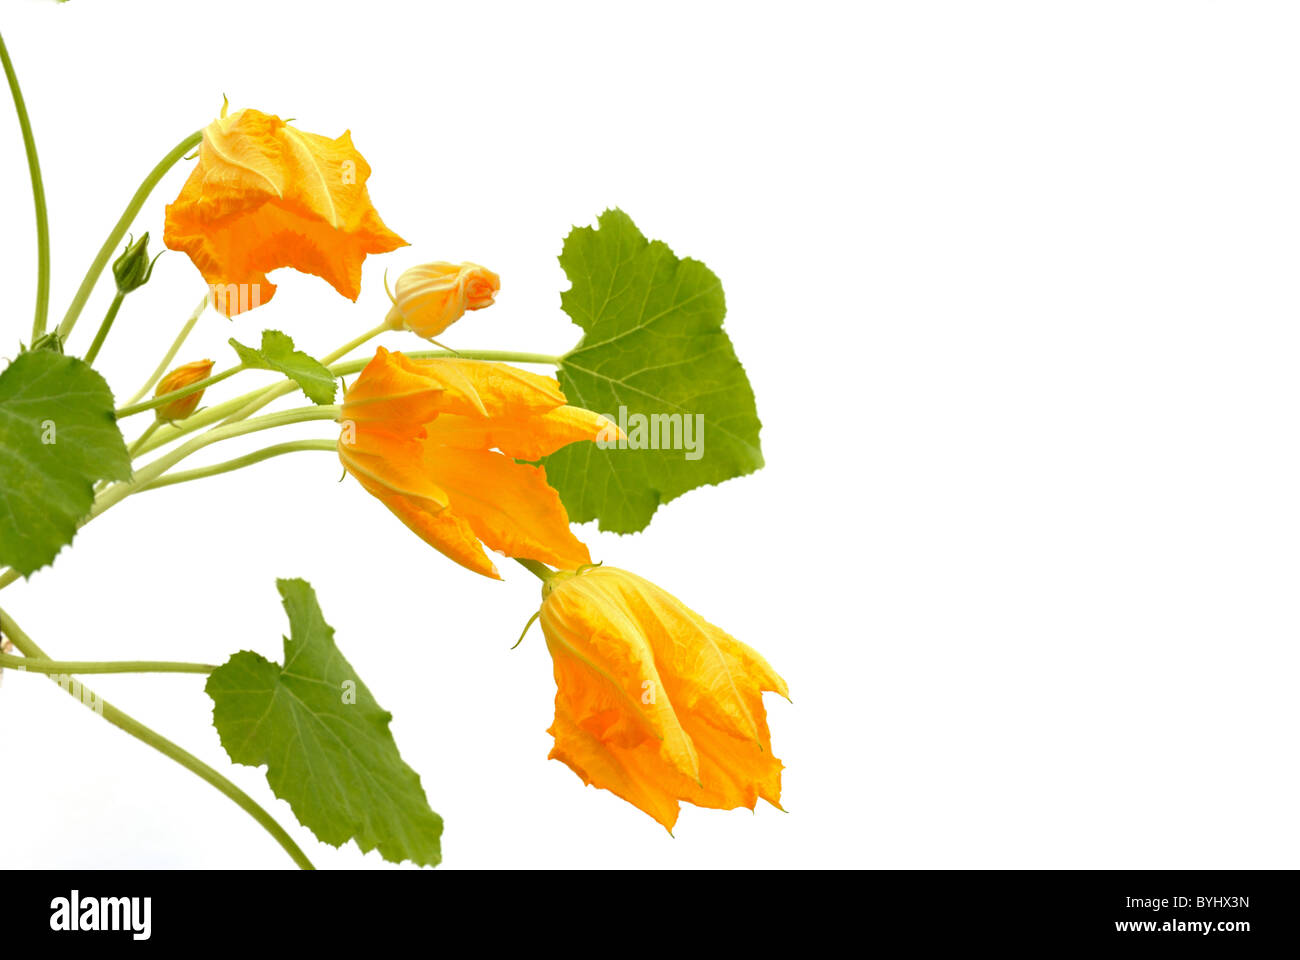 Squash flower and leaves isolated on white stock photo 34199753 alamy squash flower and leaves isolated on white mightylinksfo